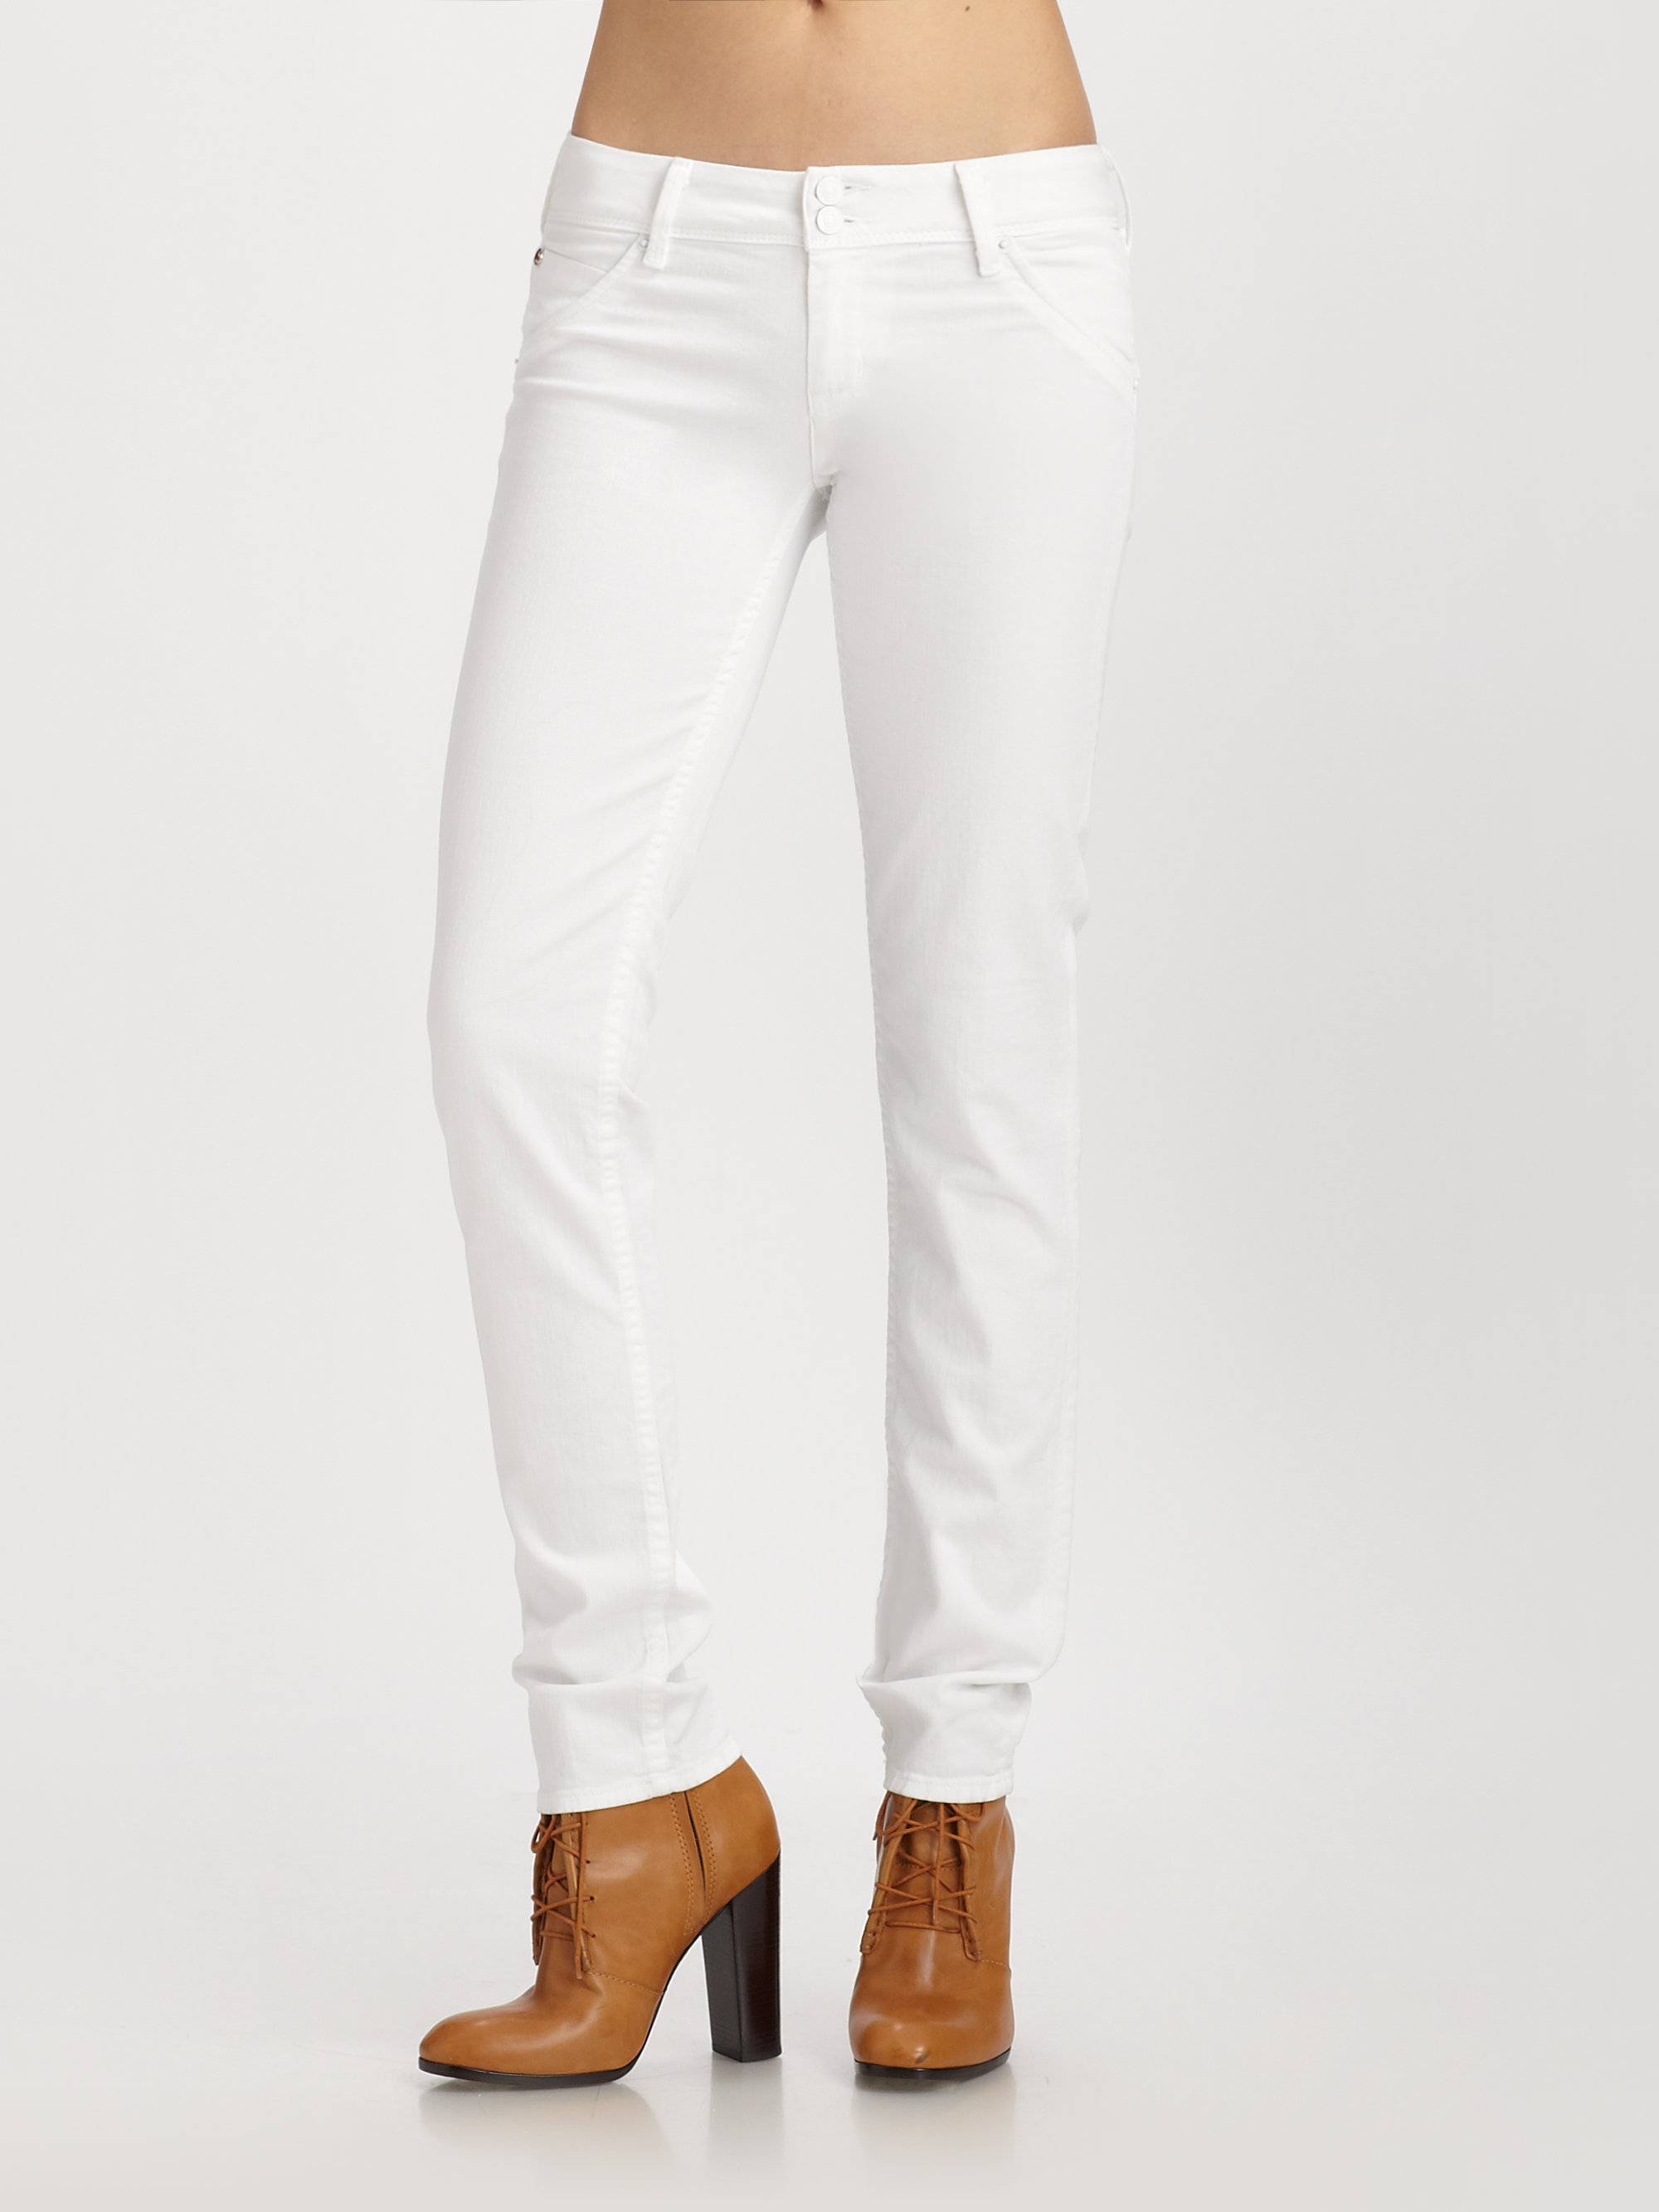 Hudson jeans Collin Skinny Jeans in White | Lyst